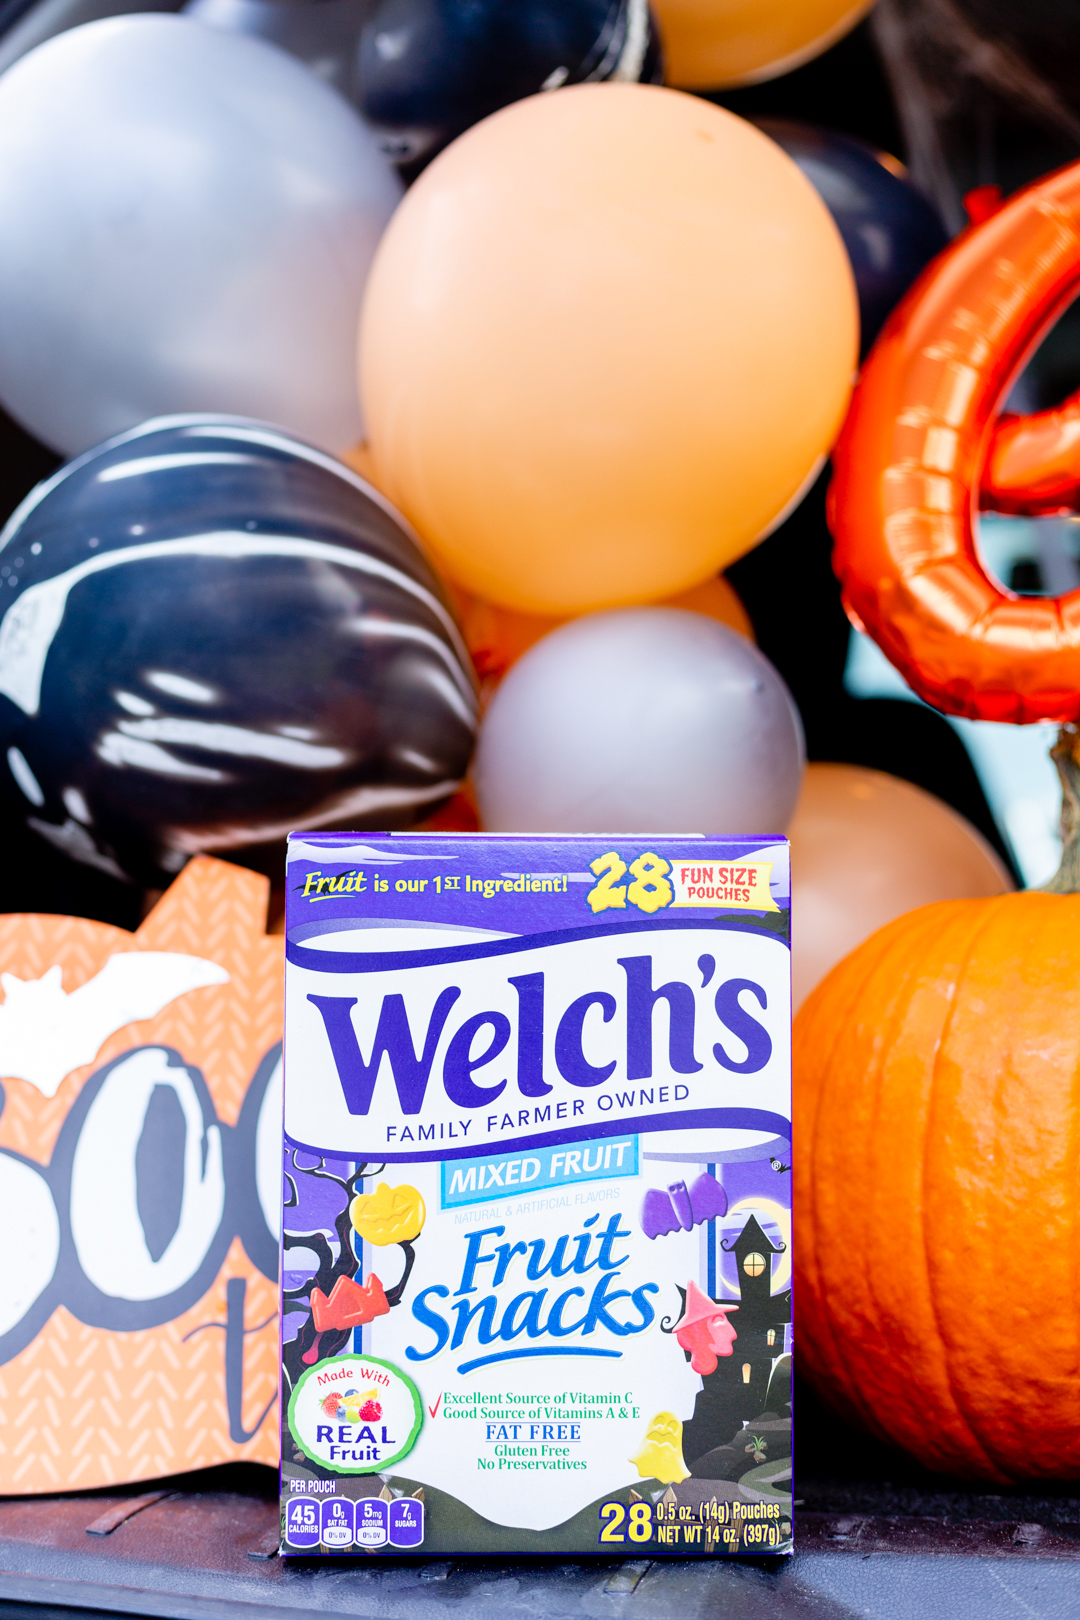 Trunk or Treat ideas with Halloween Welch's Fruit SnacksTrunk or Treat ideas with Halloween Welch's Fruit Snacks